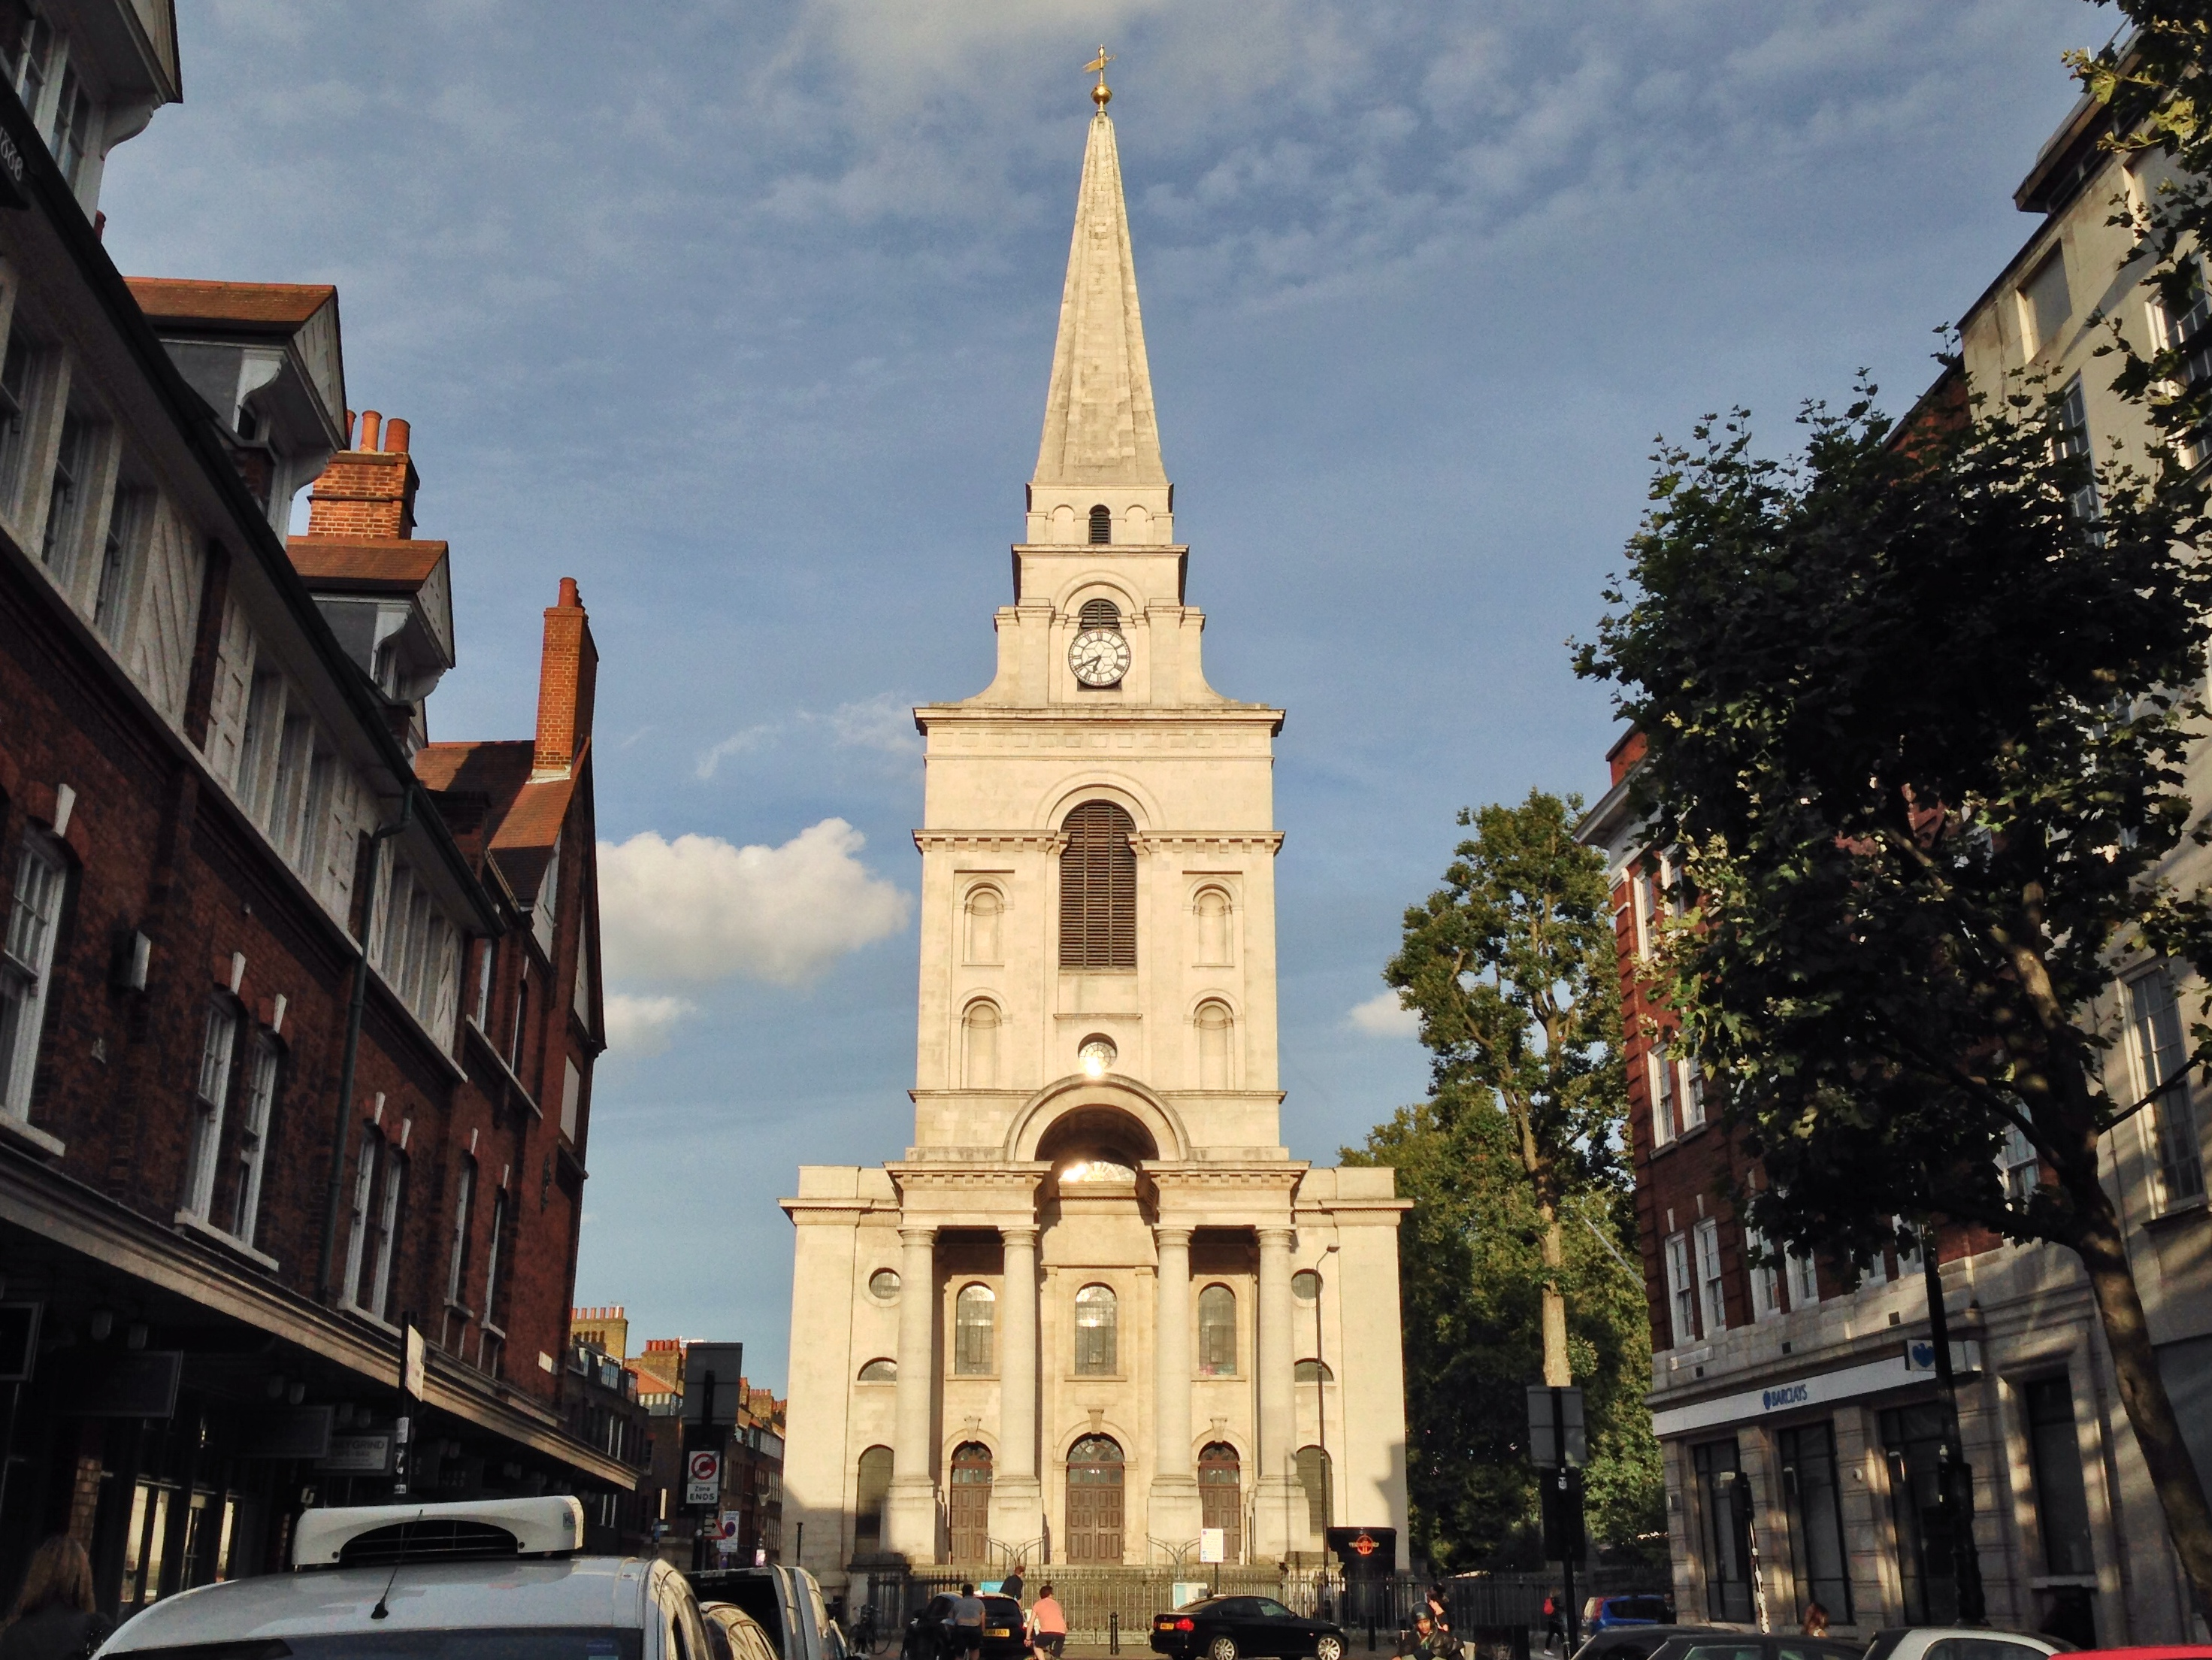 Christ-church-spitalfields.jpg